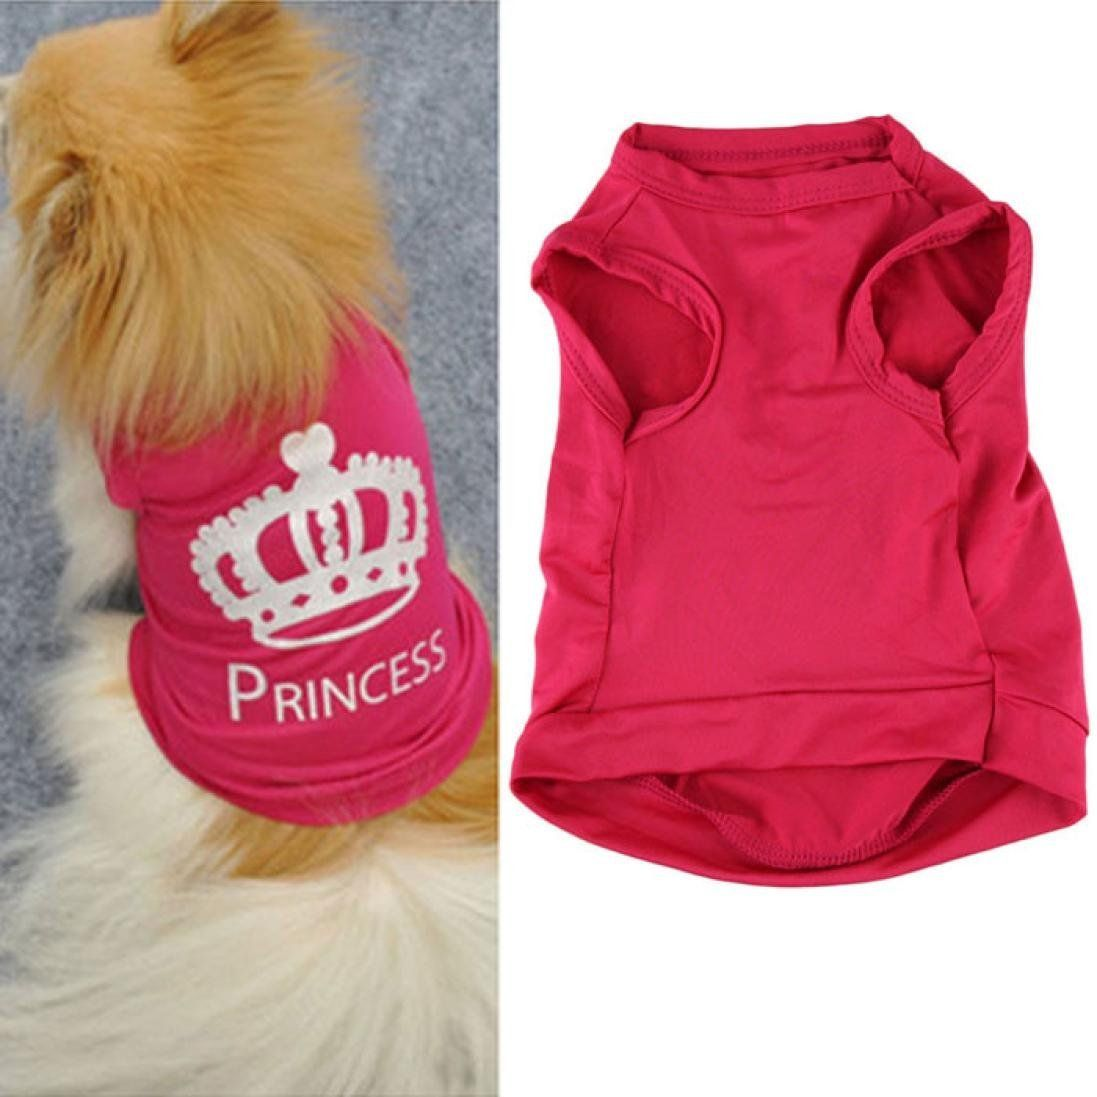 Perman fashion small pet dog cat cute princess tshirt clothes